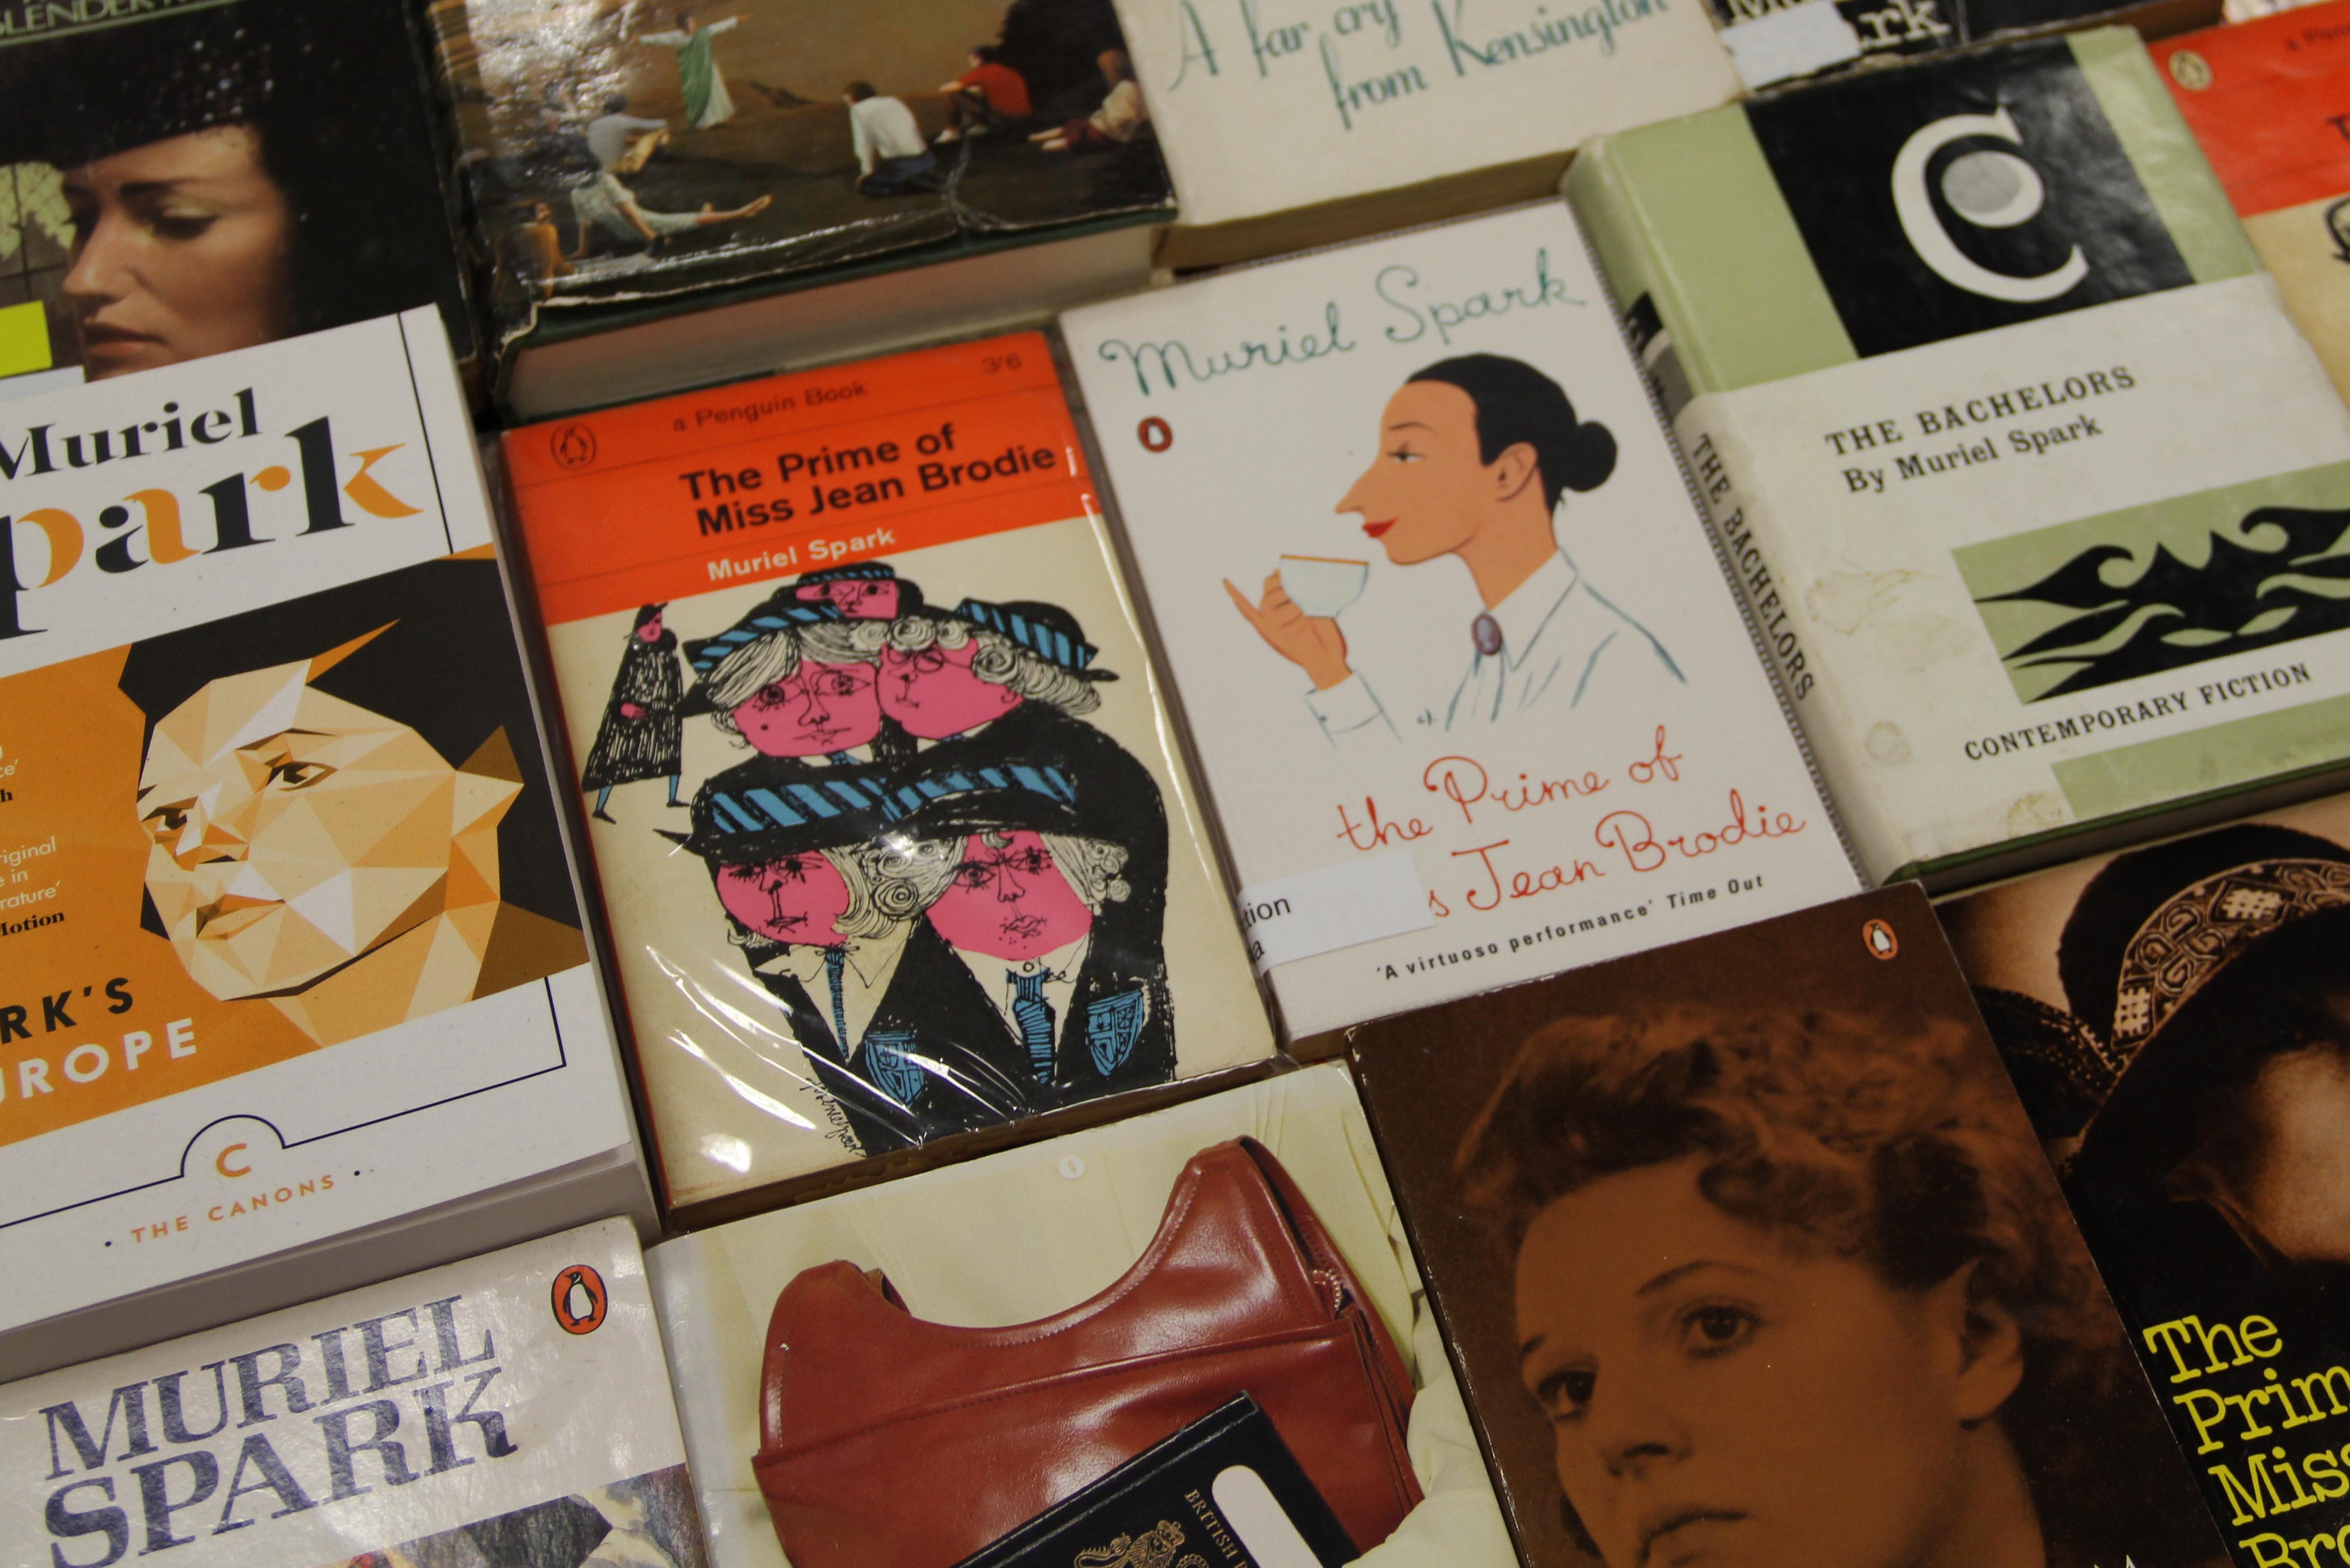 A dozen Muriel Spark novels lined up on a table show the range of cover imagery including bold graphics and illustrations, portrait photographs of Spark herself and more abstract designs.